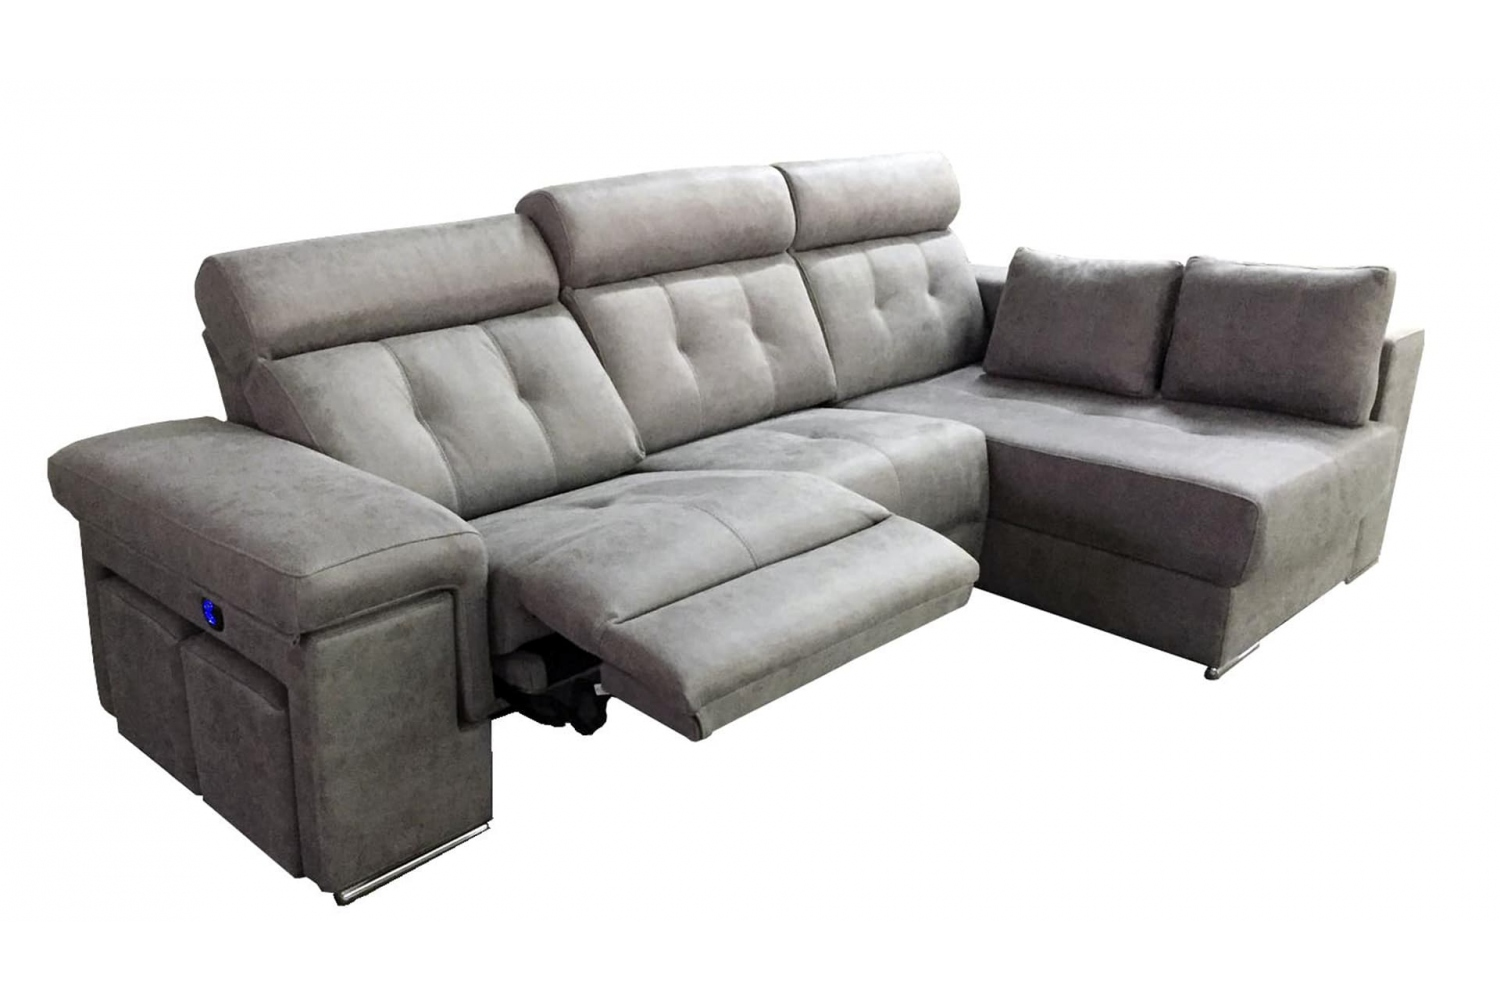 Pleasing Sofa Cheslong Electrico Con Motor Download Free Architecture Designs Xaembritishbridgeorg